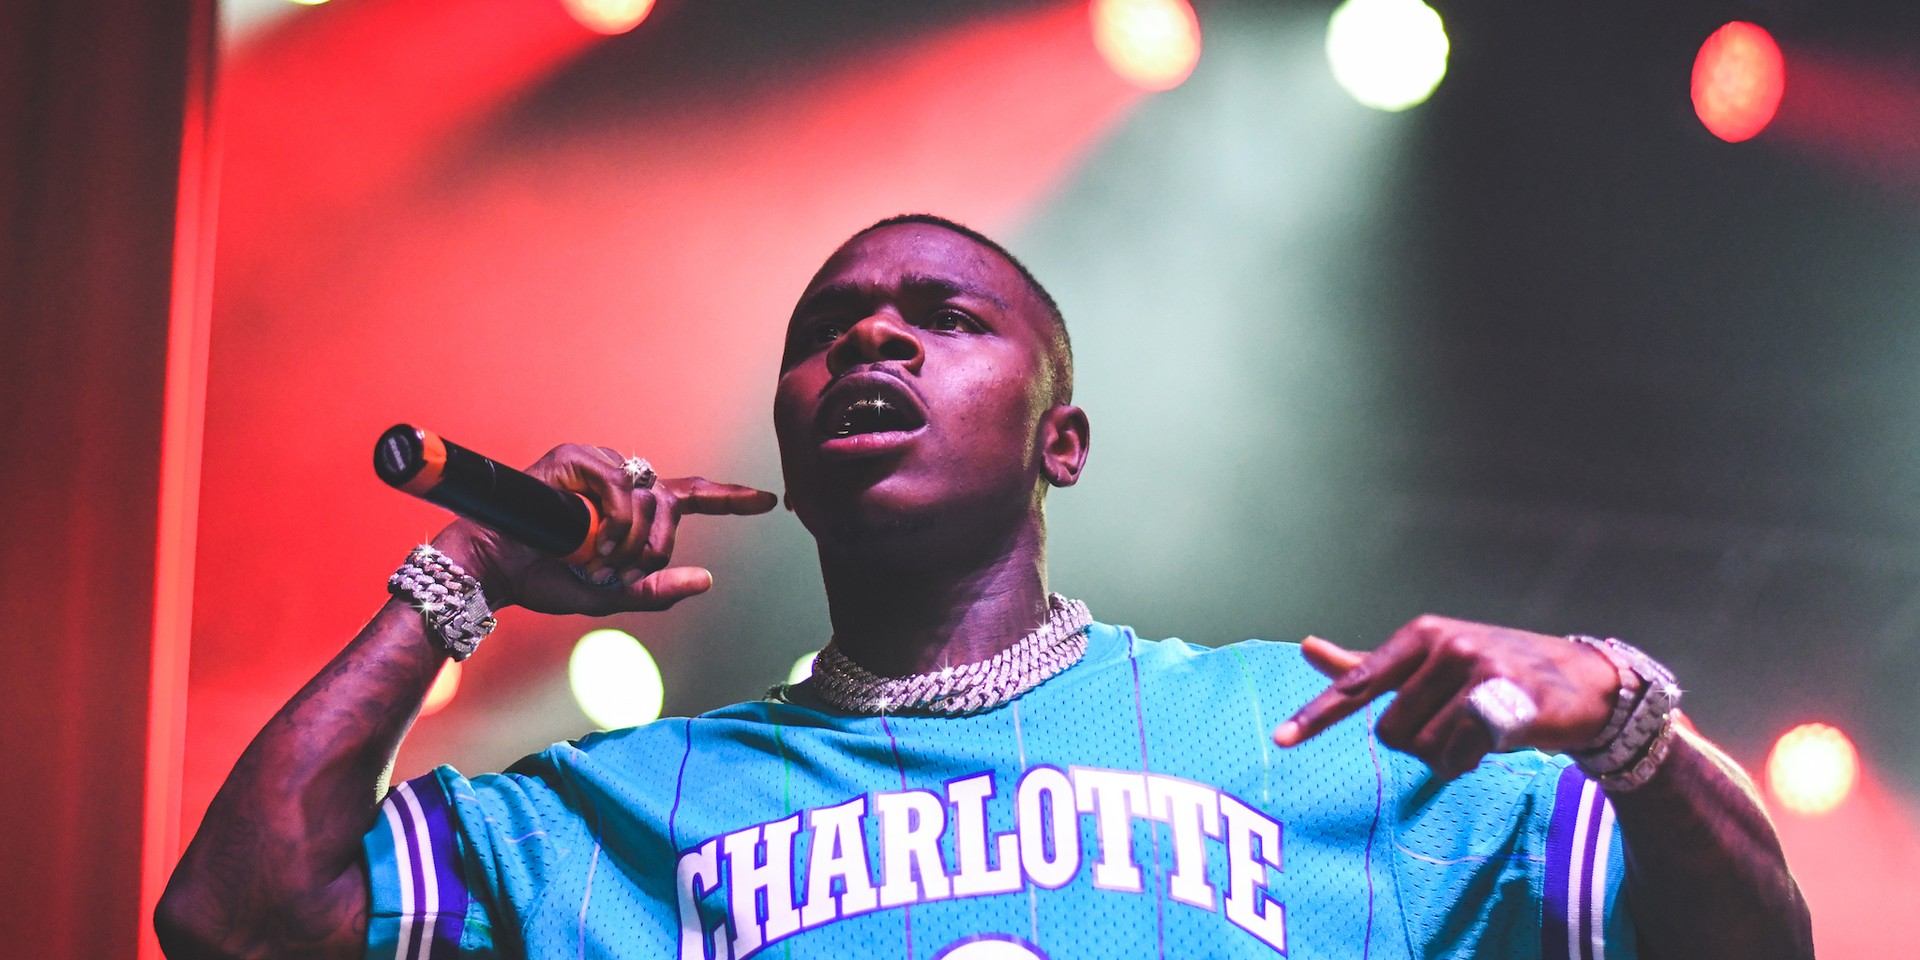 DaBaby announces new album Kirk – Migos, Nicki Minaj, Chance the Rapper and more to feature